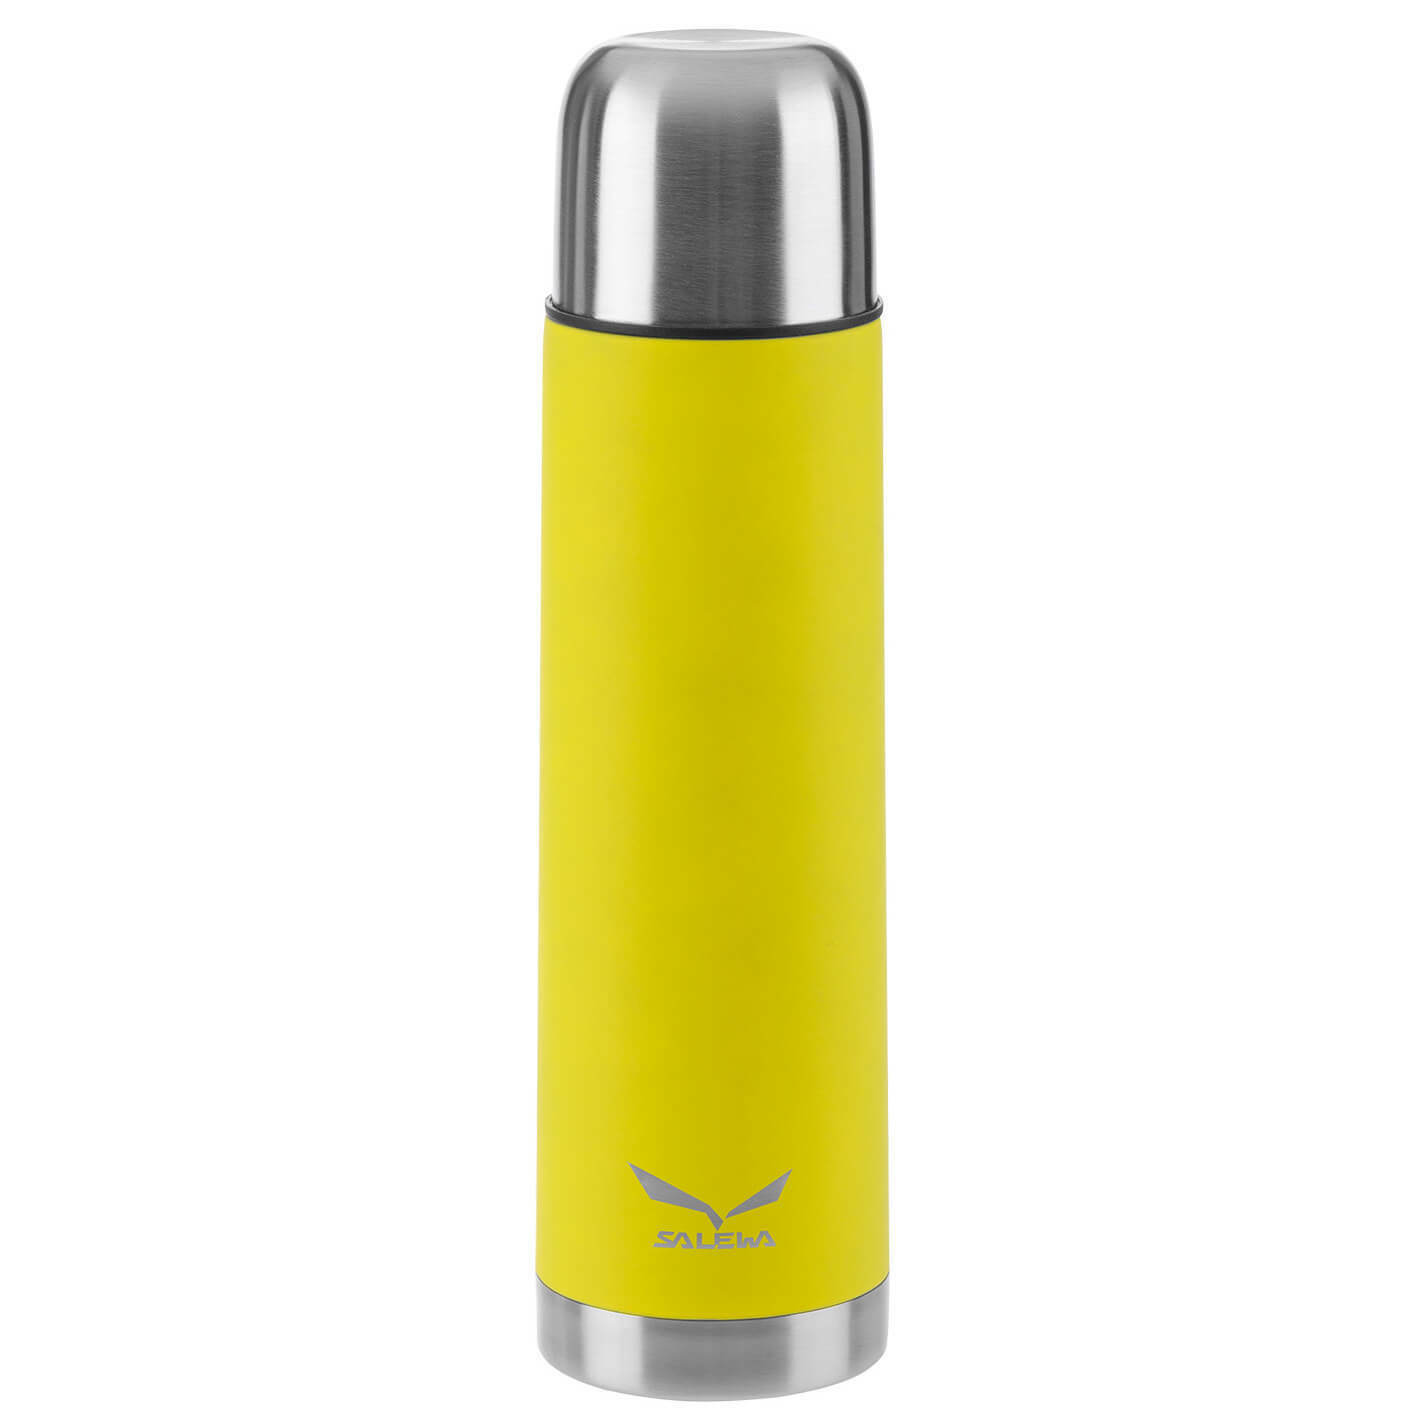 SALEWA - Thermobottle 1.0  l THERMOS - BRAND NEW  honest service